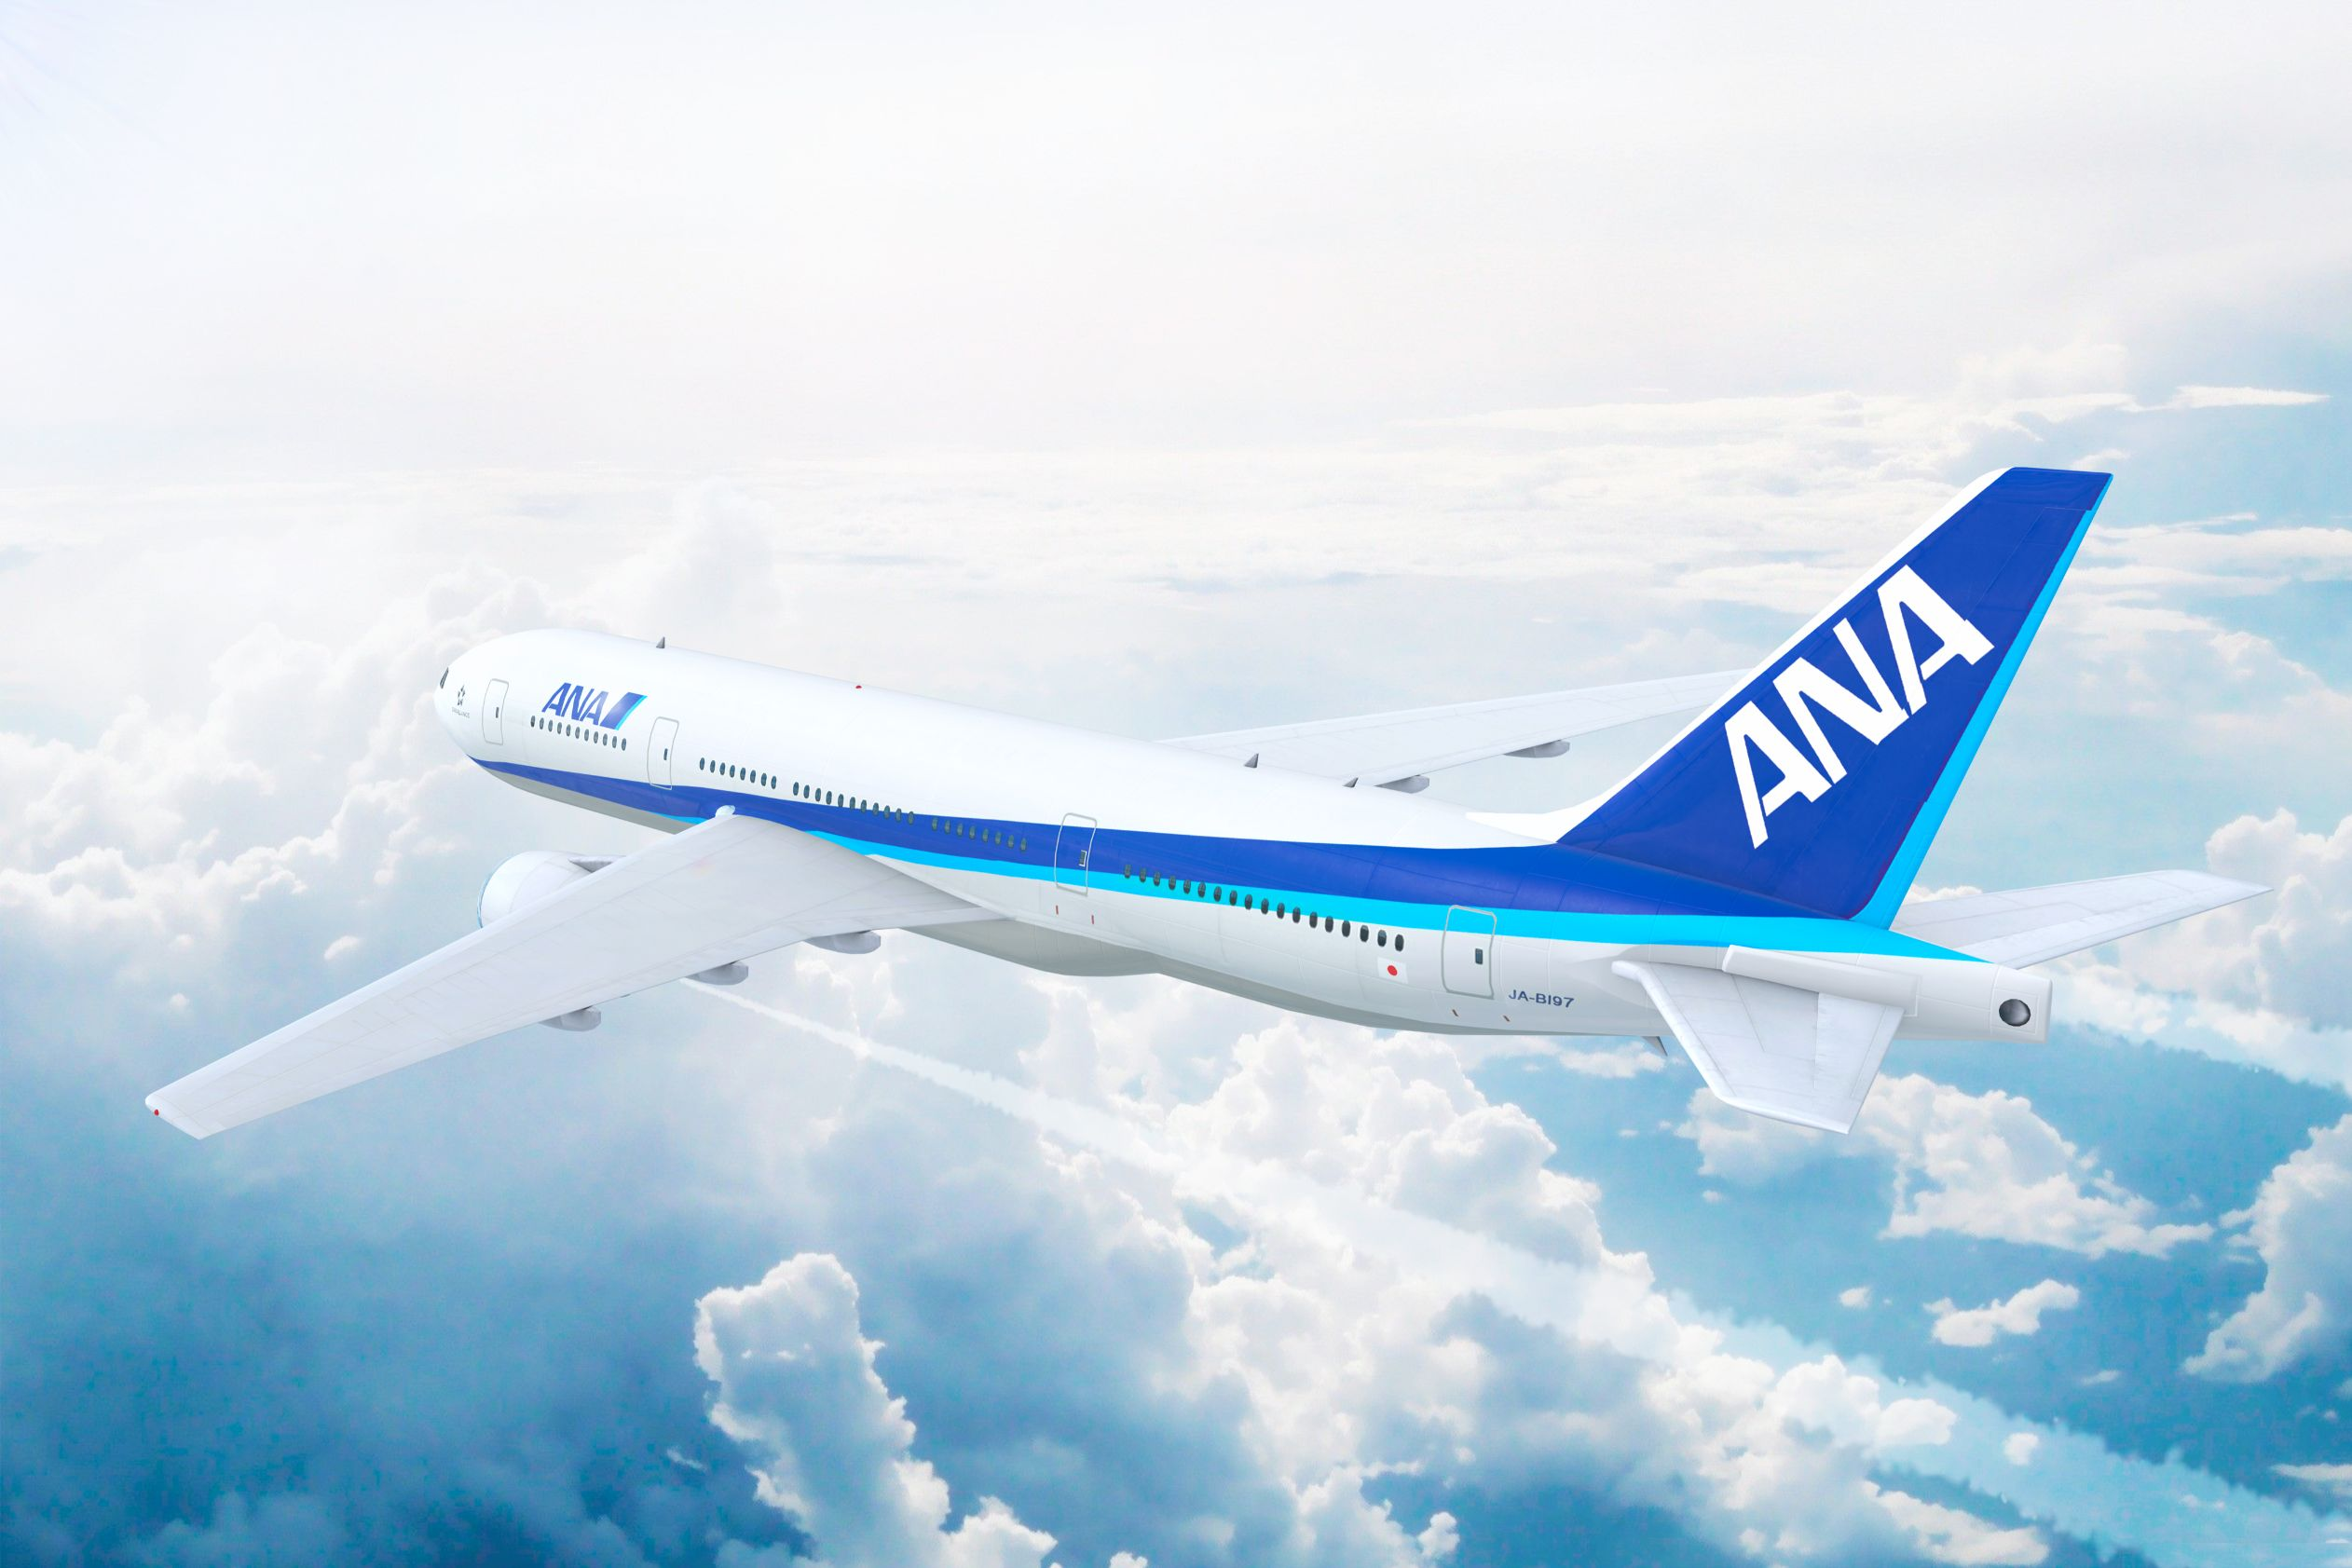 Business Class Review: All Nippon Airways